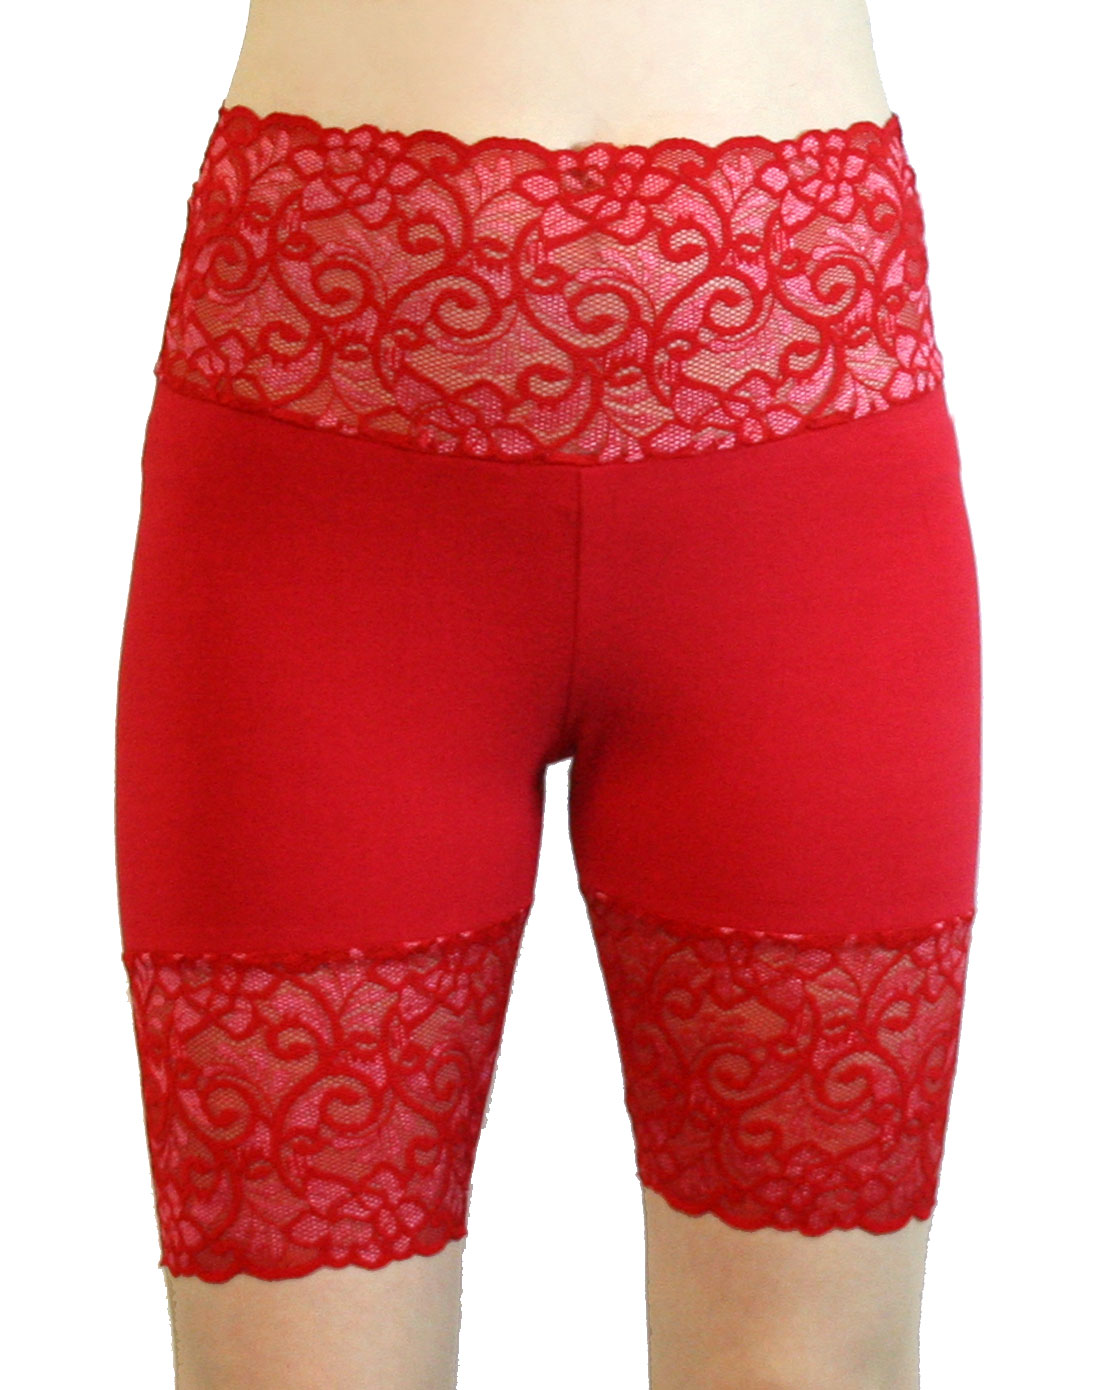 Bright Red High-waisted Wide Waistband Stretch Lace Shorts Plus Size